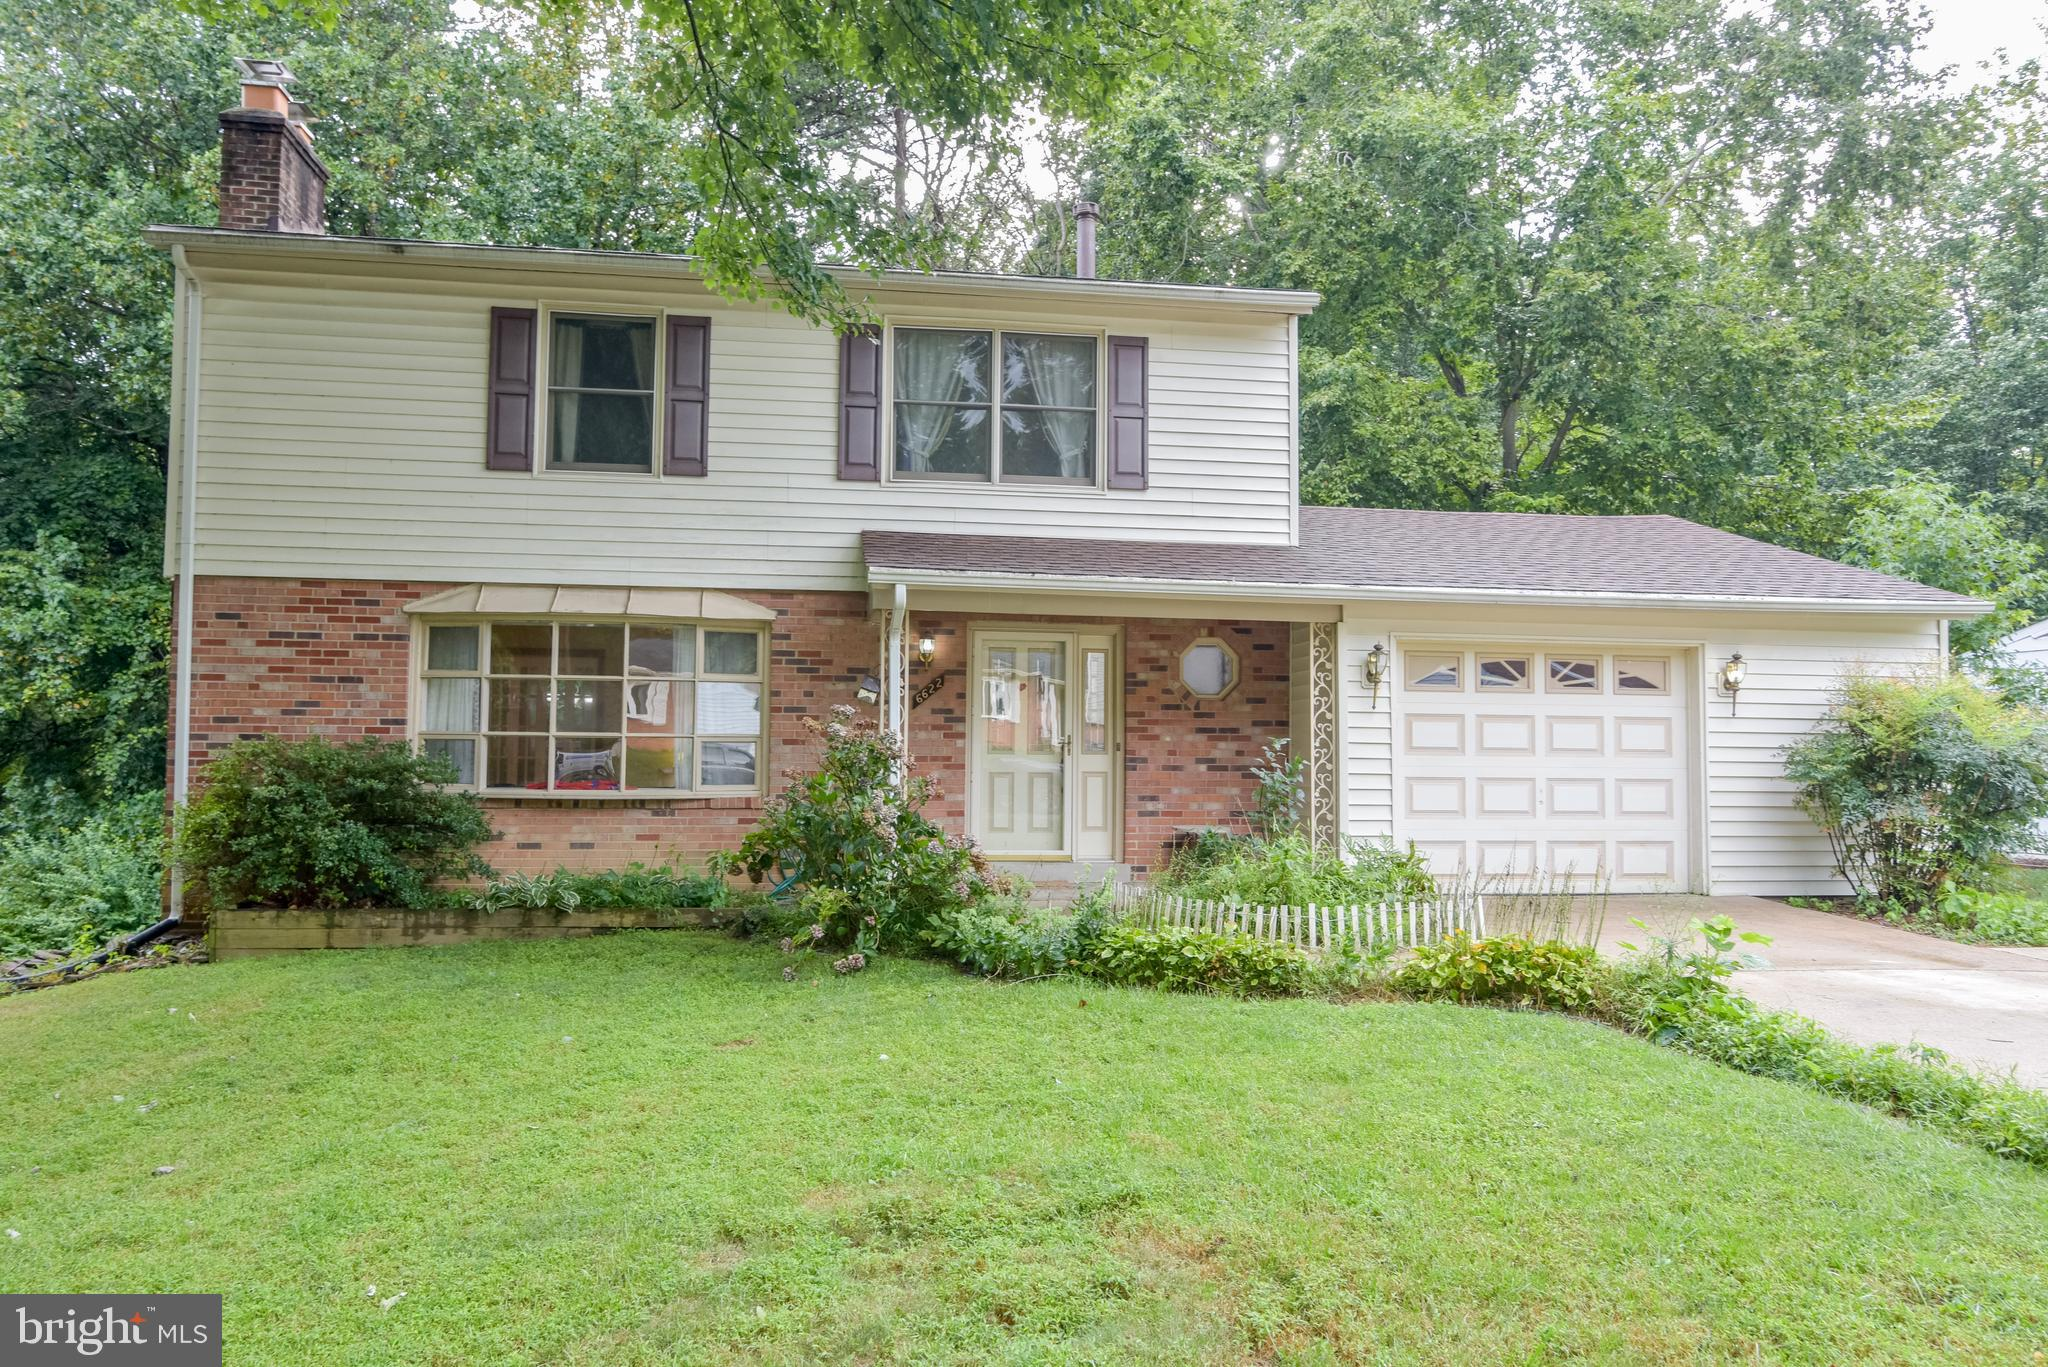 Priced to sell! Great 'bones' in this 4 BR/2.5 BA Colonial on an awesome lot backing to Hidden Pond Park! Hardwood floors on main & bedroom level 2 Fireplaces! Oversized 1 Car Garage! Updated Kitchen appliances! Walk-out from lower level Rec Room & Den! HVAC & Hot Water Heater are approx 3 years old! It's a diamond in the rough! Priced $1,000's less than the tax assessment.  It's your chance to update the kitchen, baths, floors & paint the way you want to, rather than re-do what someone else has done.  West Springfield HS pyramid! Neat & Clean ... just needs updating.  Being sold 'AS-IS' ... Hurry Scurry!